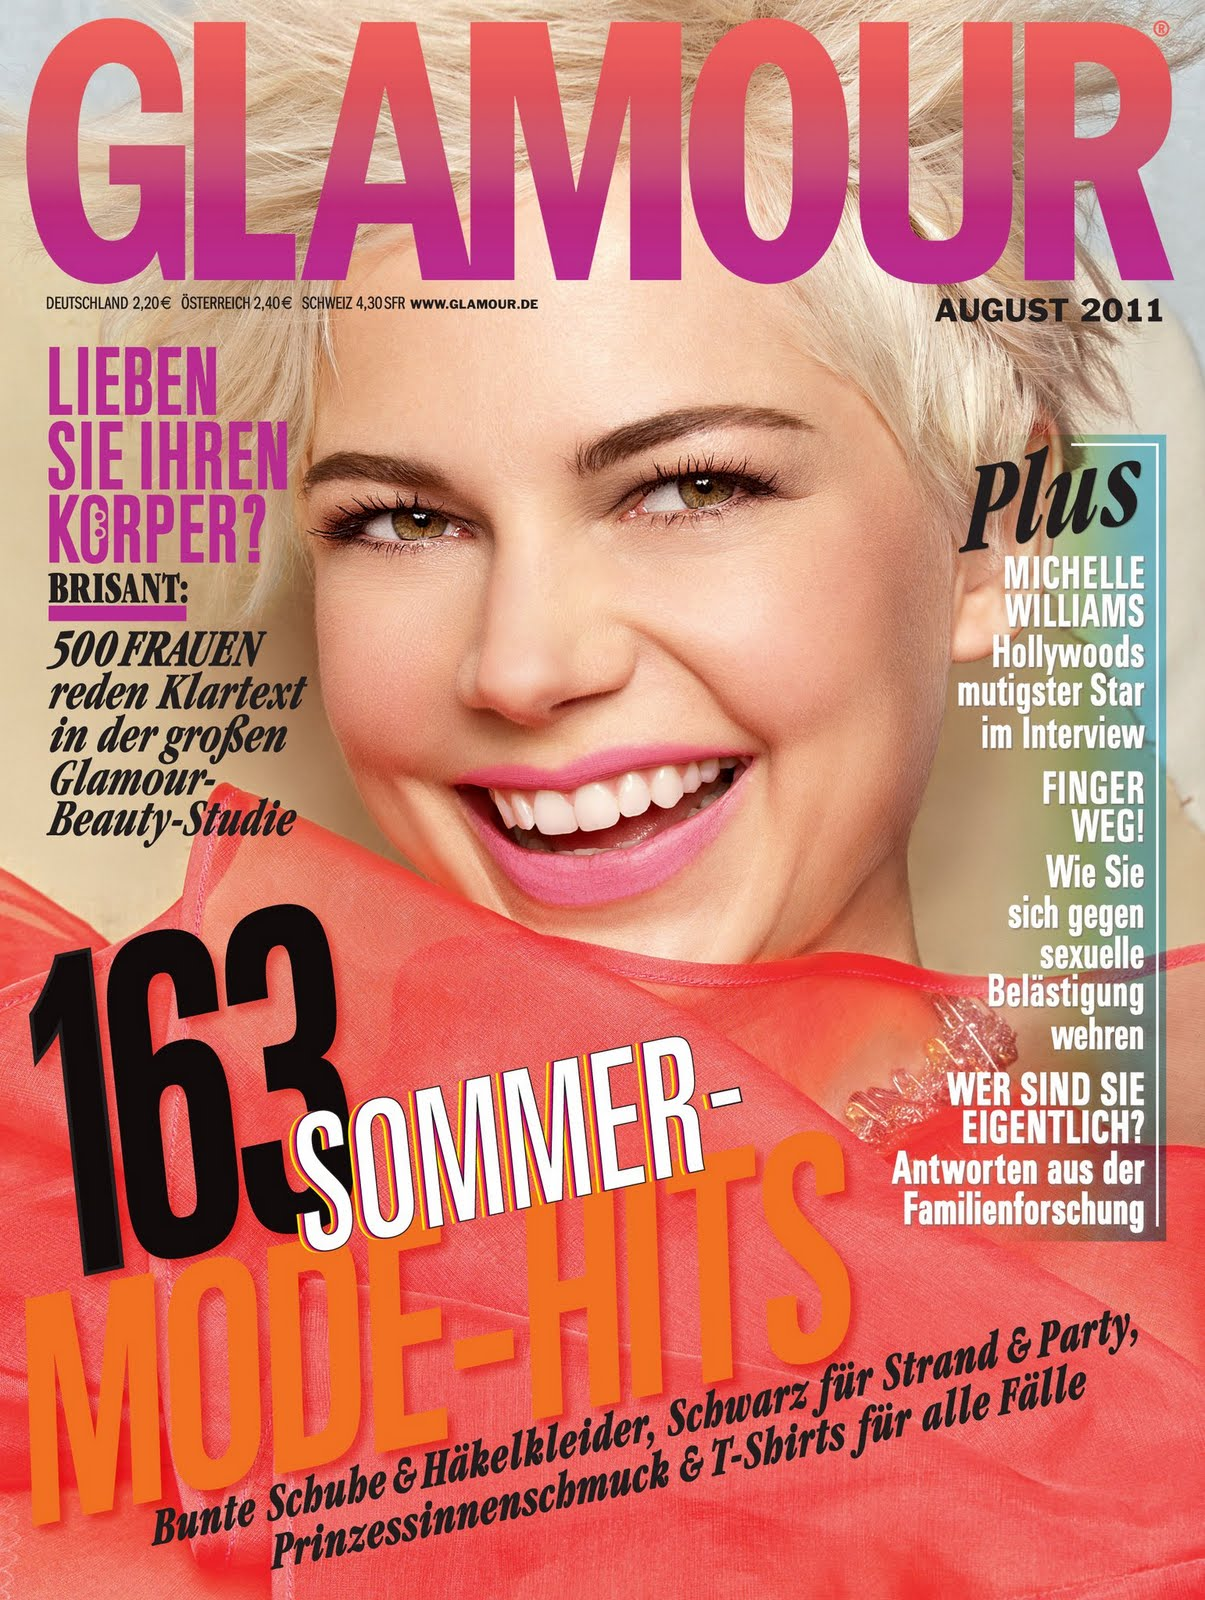 http://2.bp.blogspot.com/-eAjvnui3EL4/TiWjyUQ5gtI/AAAAAAAAB5I/1DUuWmp0dbw/s1600/glamour-germany-aug-2011-michelle-williams.jpg